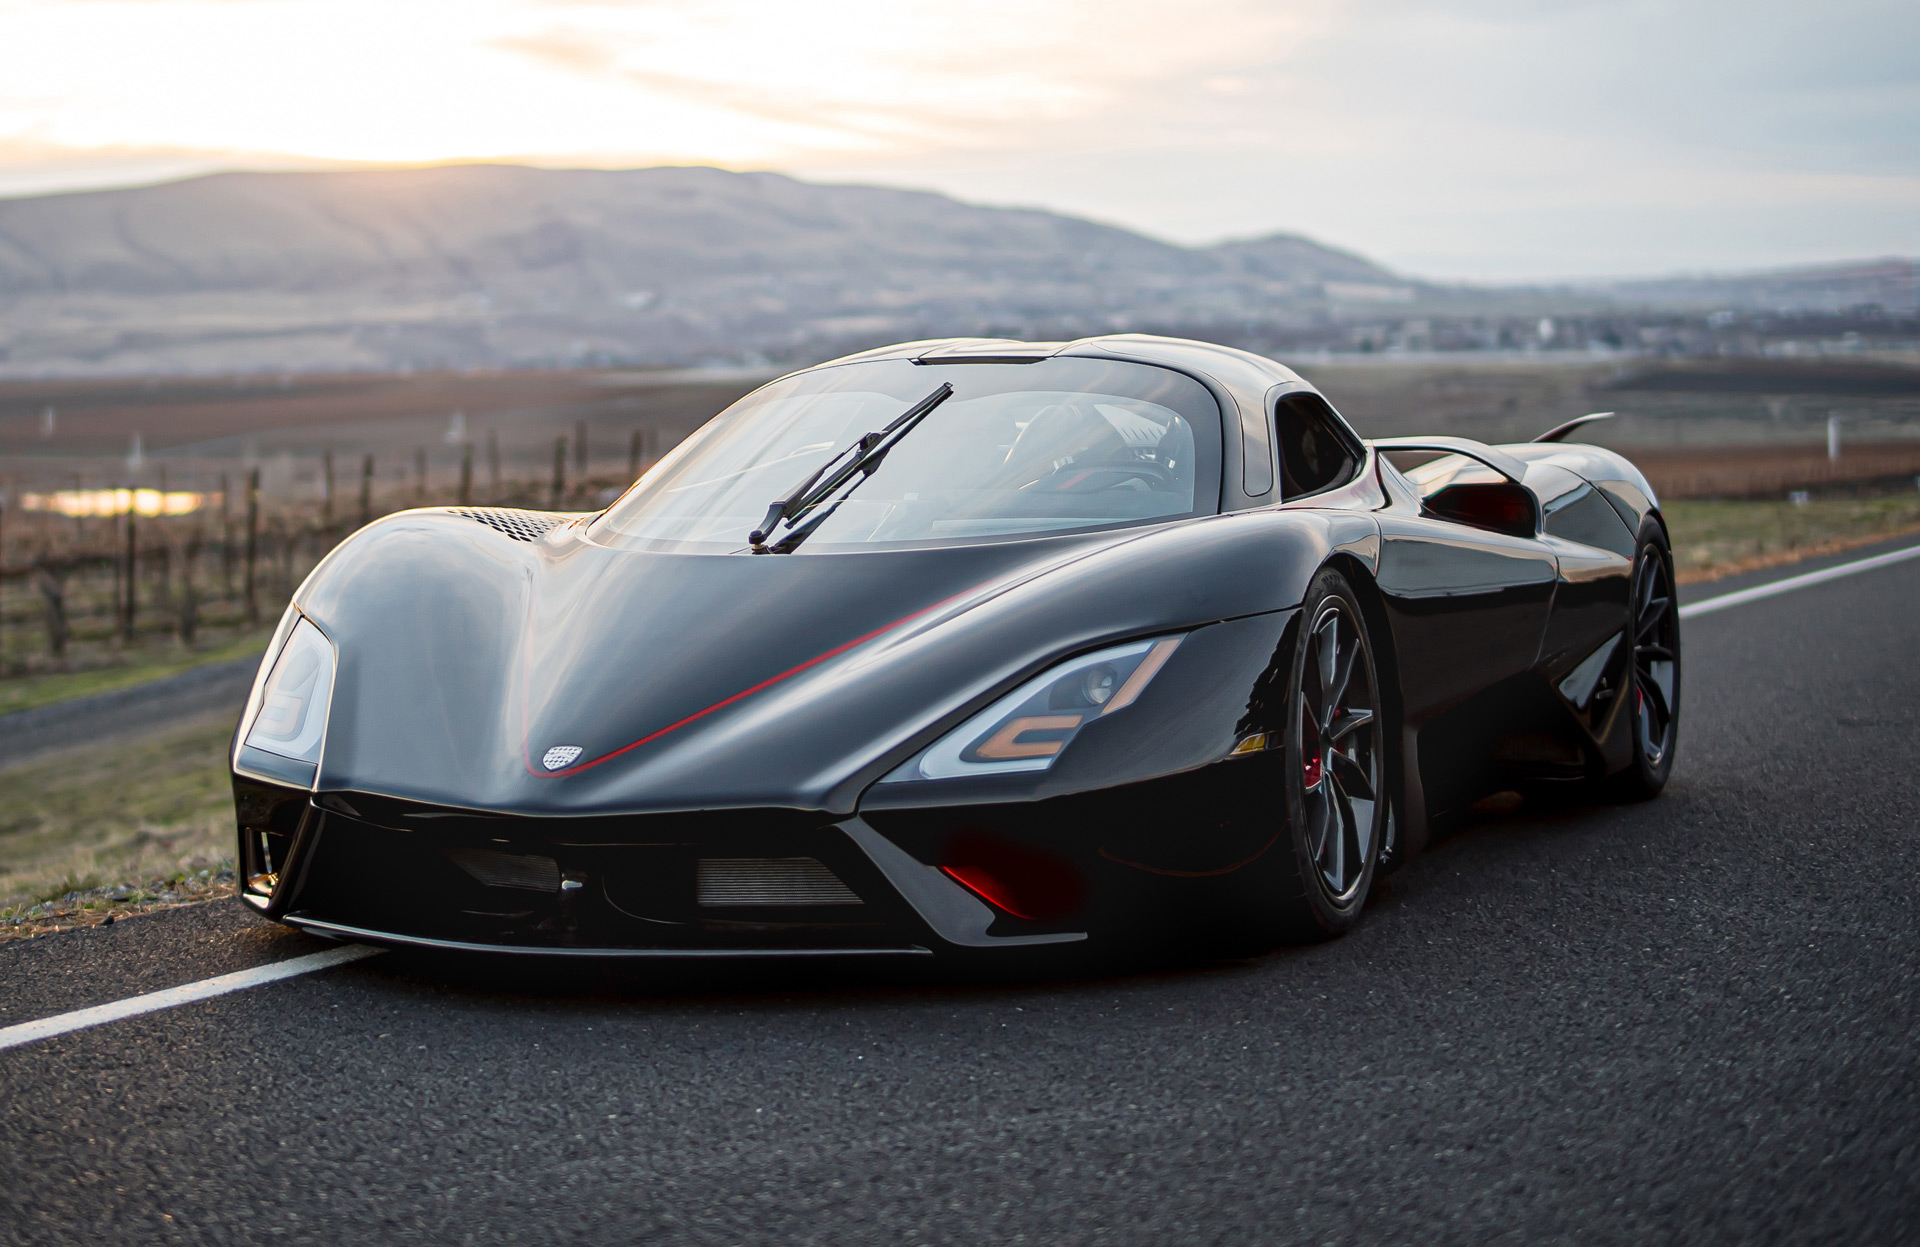 The SSC Tuatara might be world's fastest production car after reported speed record attempt